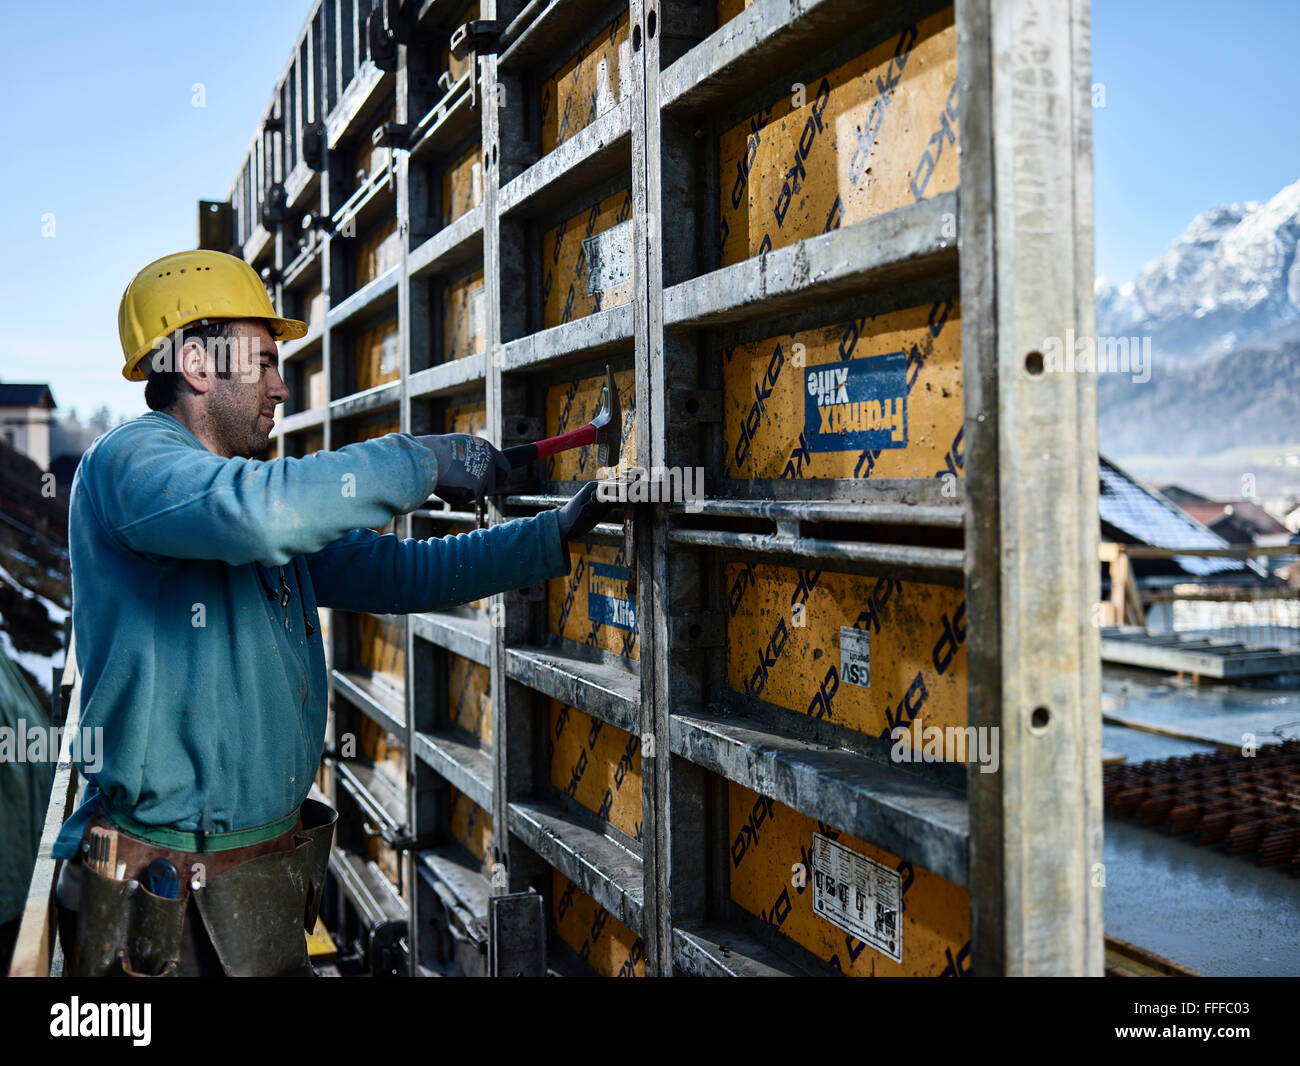 Construction worker hitting connecting element with hammer, shuttering wall, Innsbruck Land, Tyrol, Austria - Stock Image